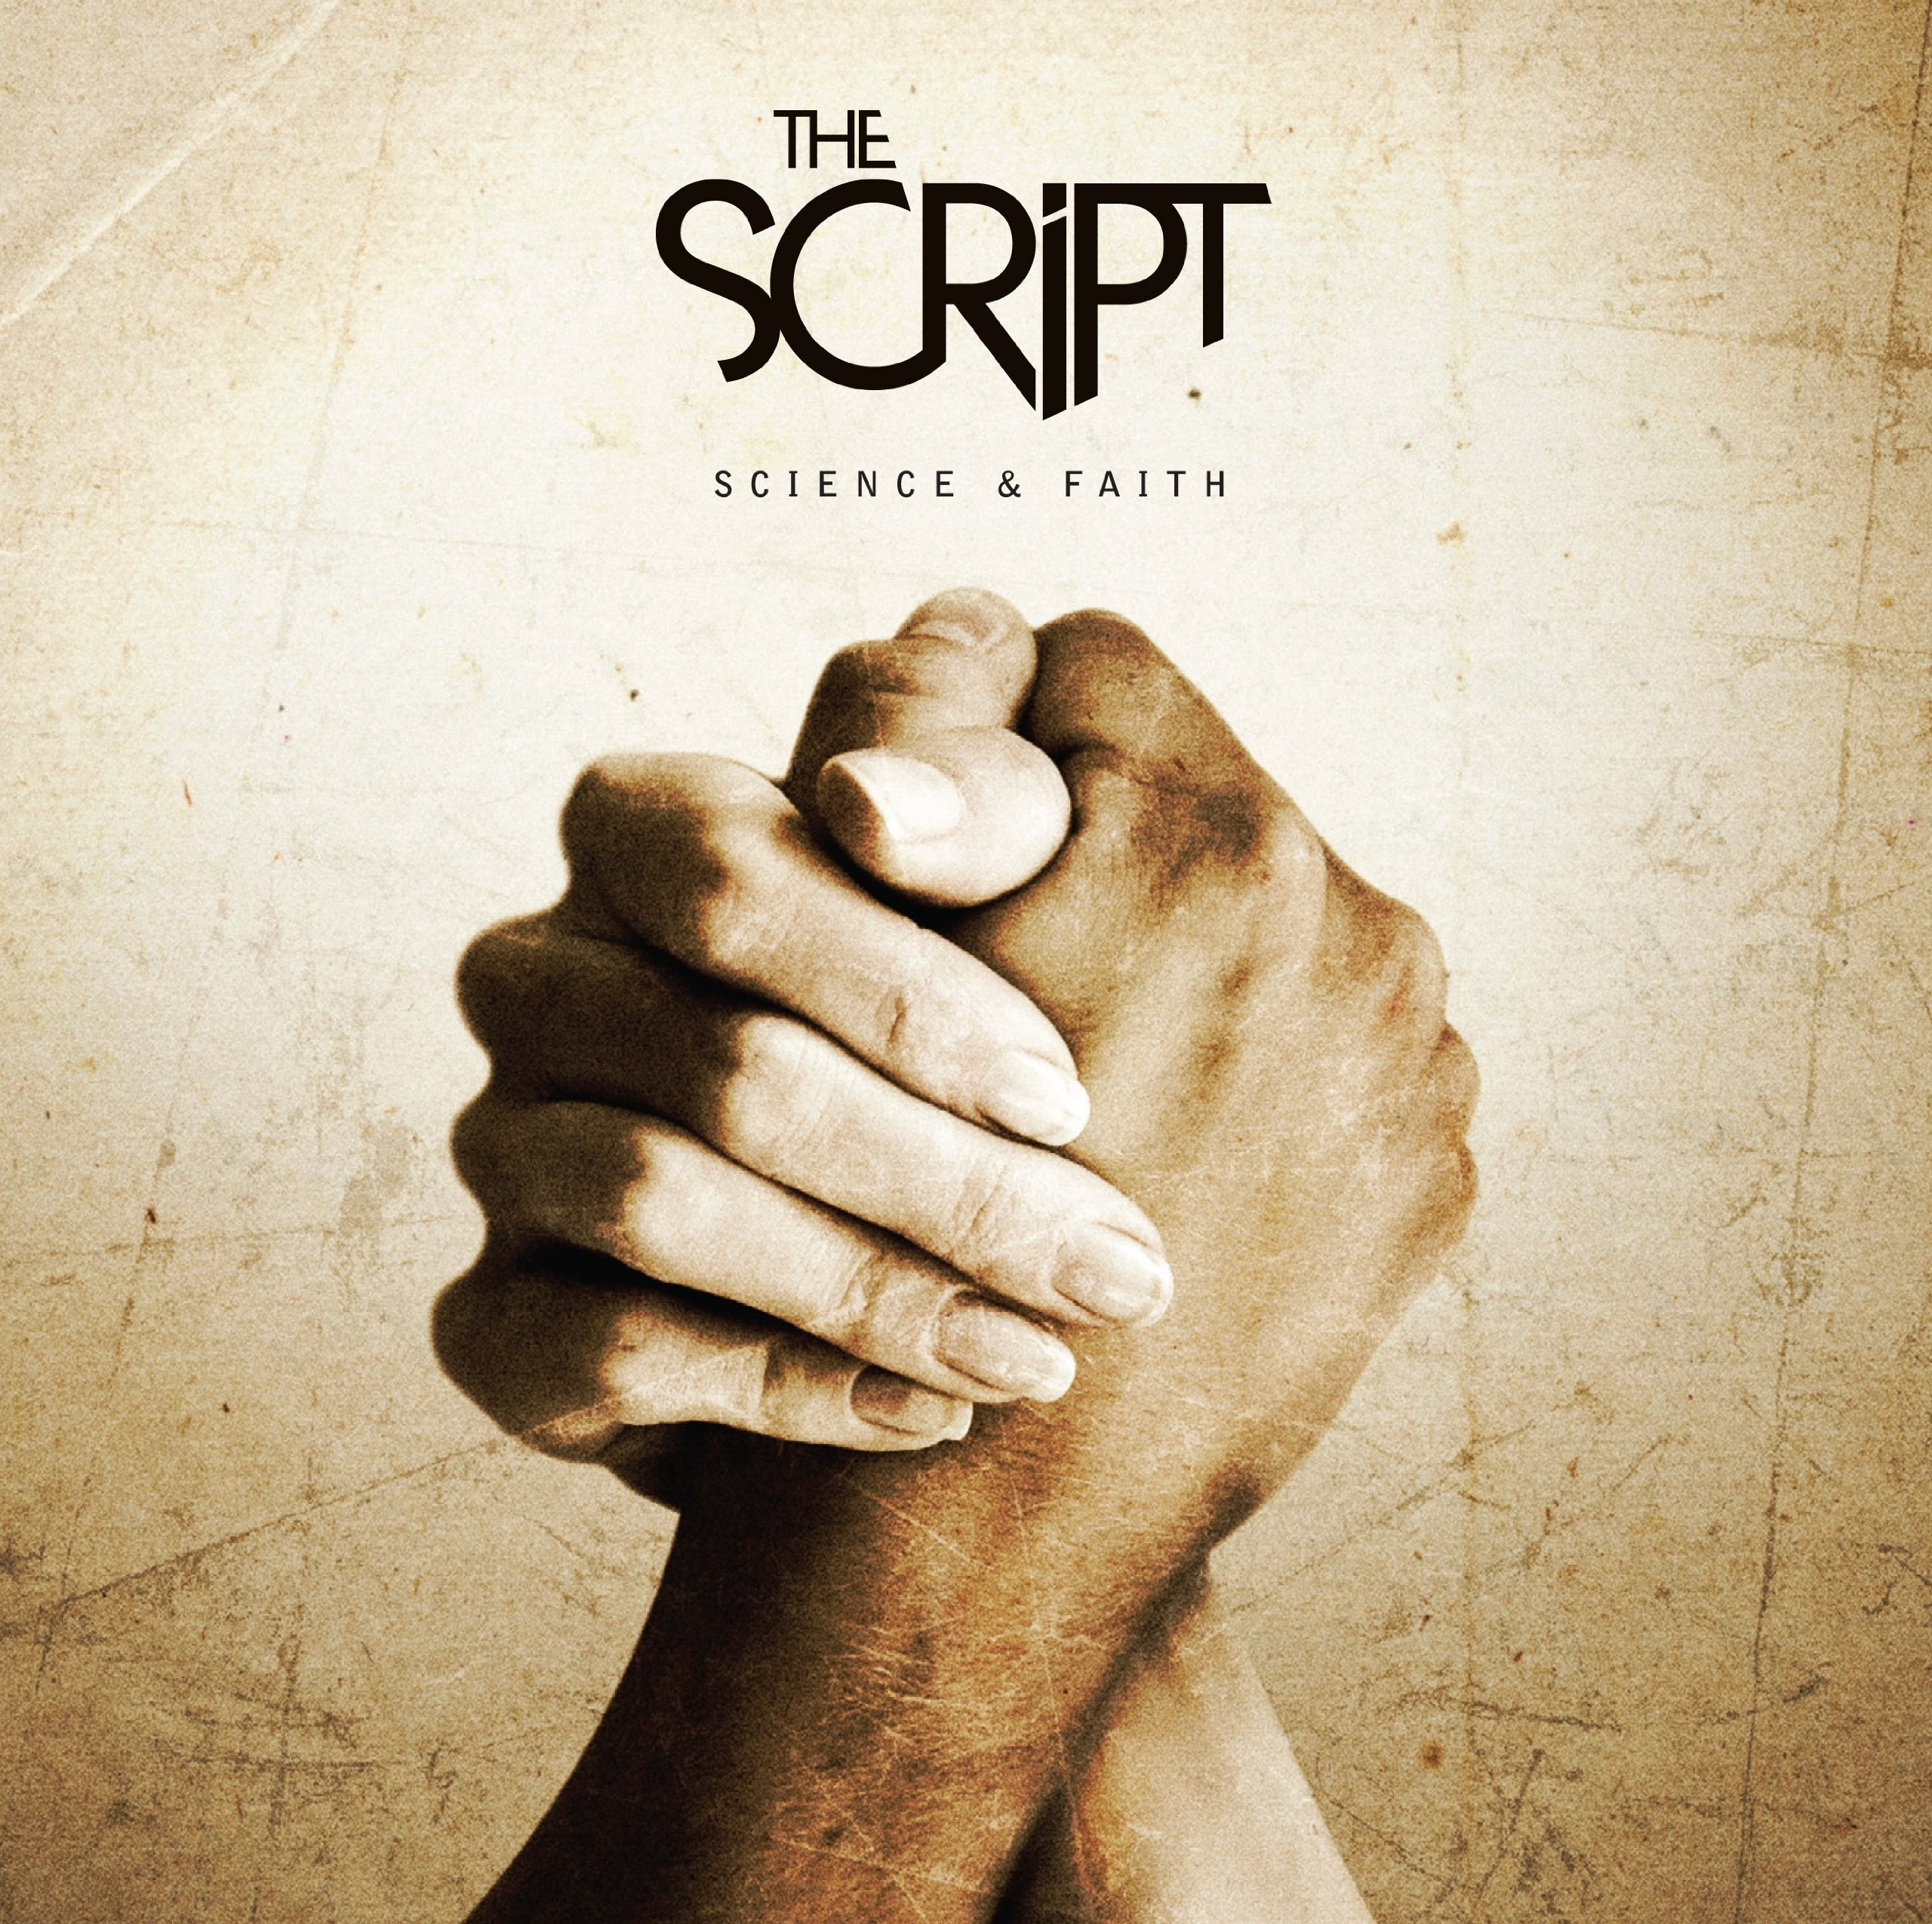 The Script Live in Manila | This Irenic Life